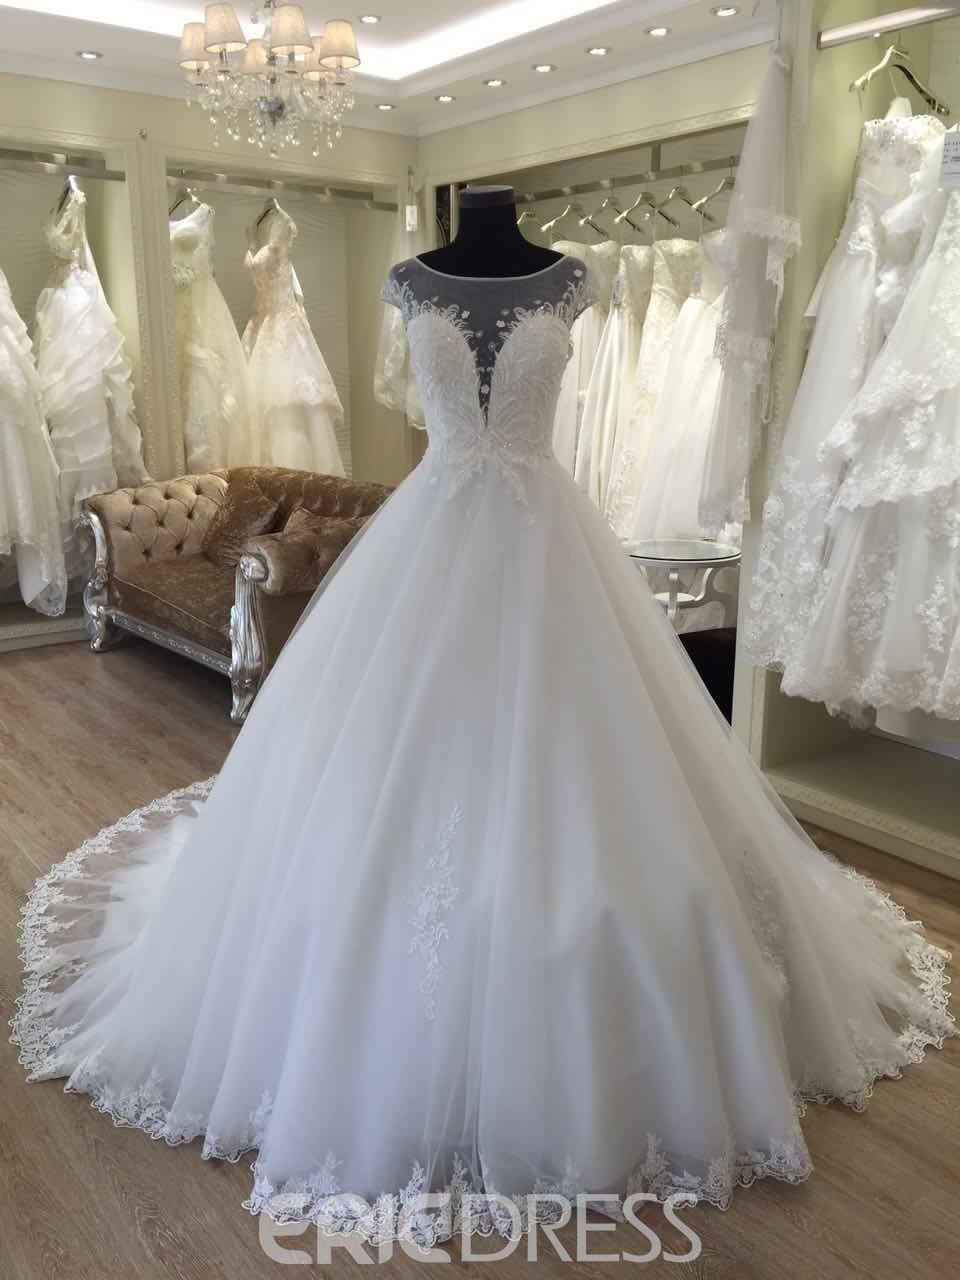 Ericdress Beautiful Beaded Appliques Scoop Ball Gown Wedding Dress